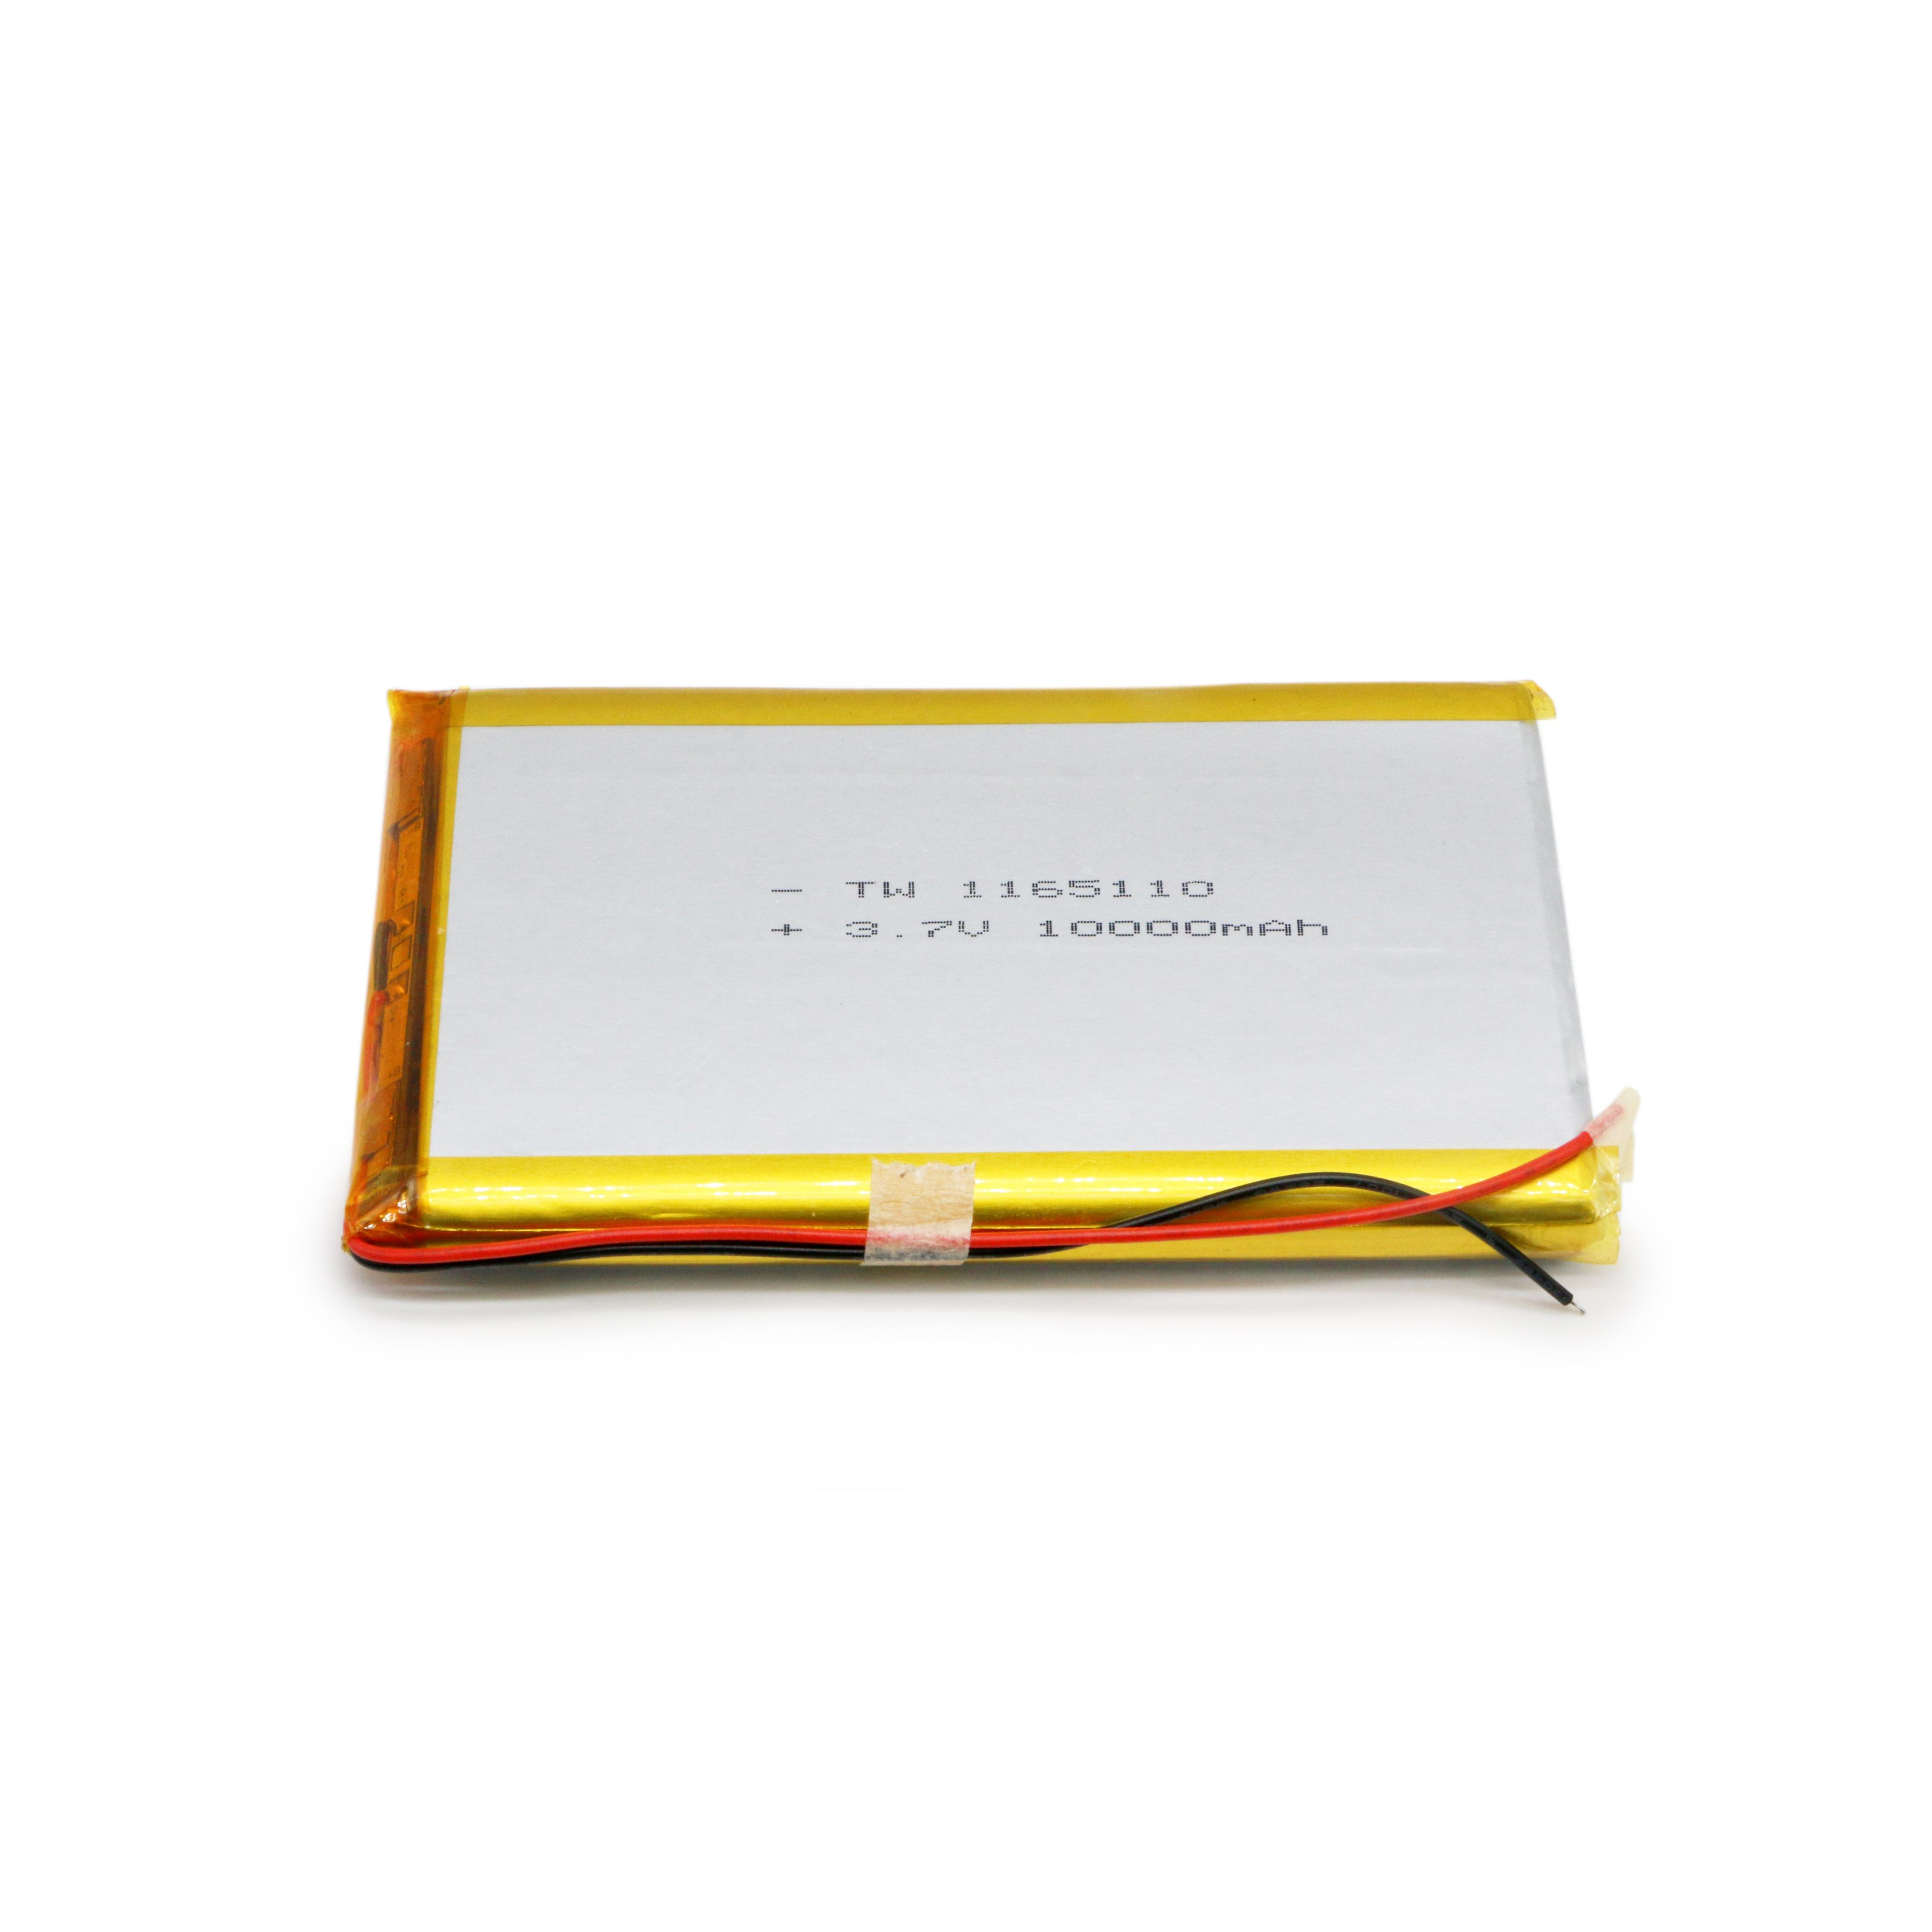 1260105 10000mah 3.7v flat square smallest graphene lithium polymer ion battery cells pack